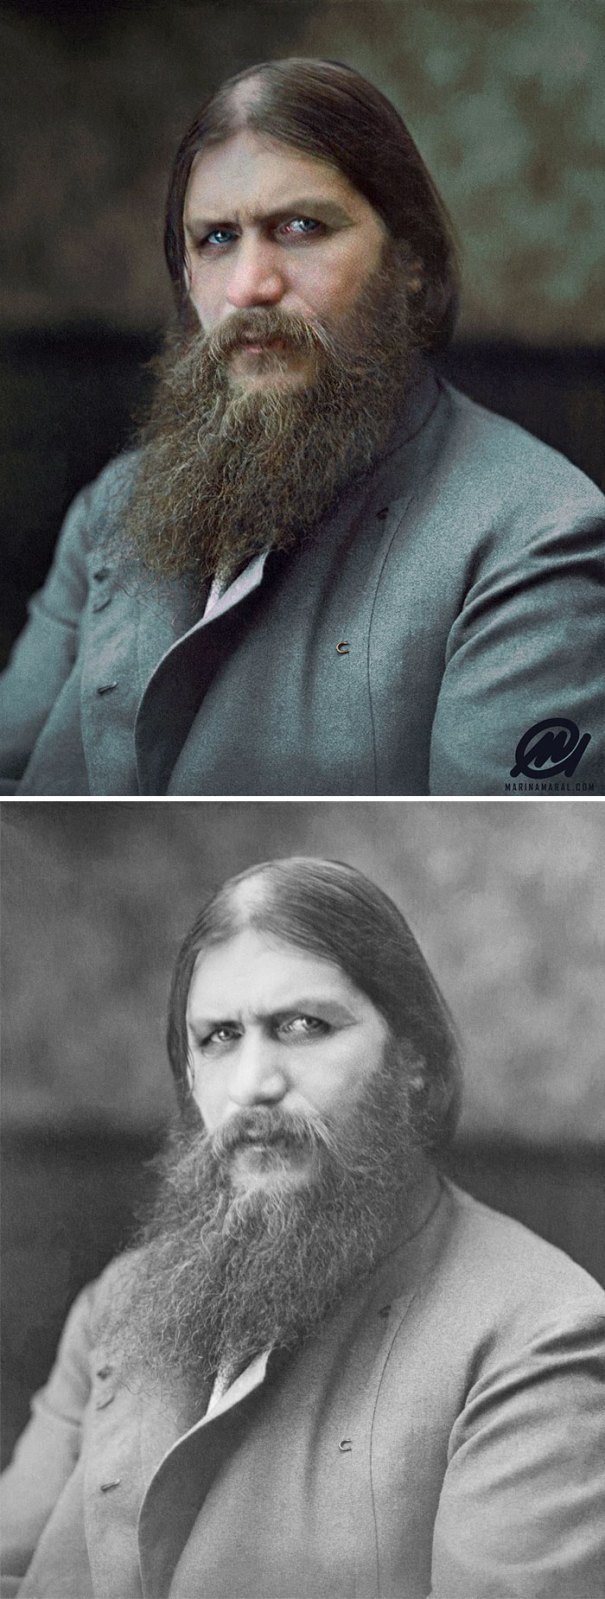 5b6d3b69e2341-colorized-historic-photos-marina-amaral-7-5b6acd04c5907__700 This Artist Colorizes Old Black & White Photos, And They Will Change The Way People Imagine History Photography Random